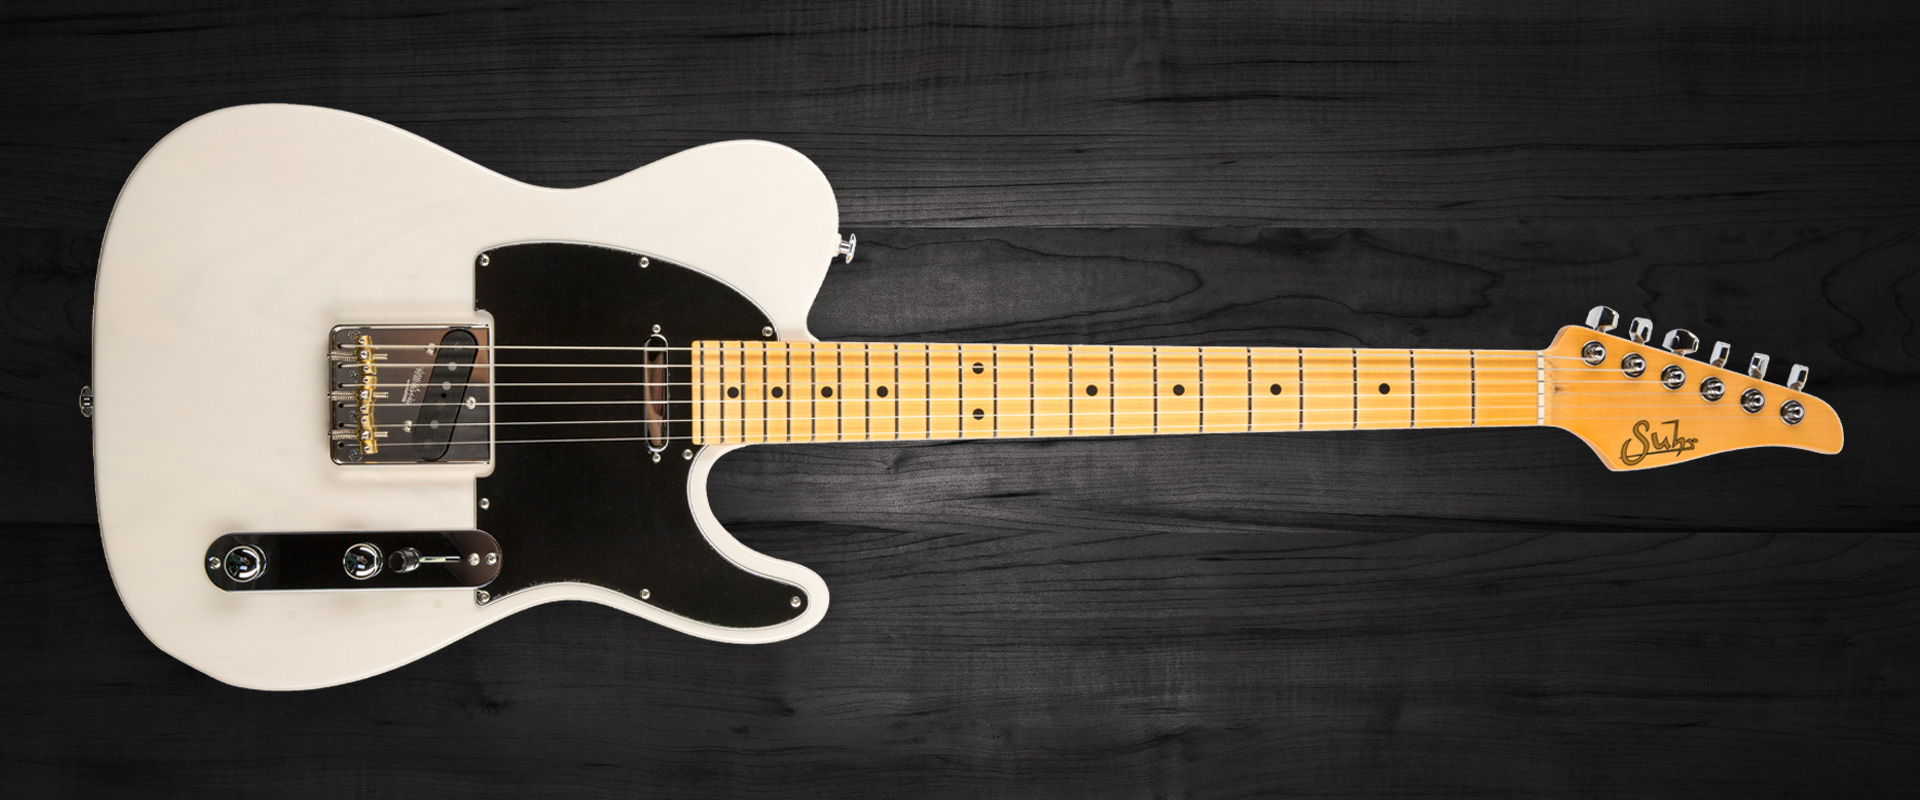 hight resolution of suhr classic t timeless tone unrivaled playability